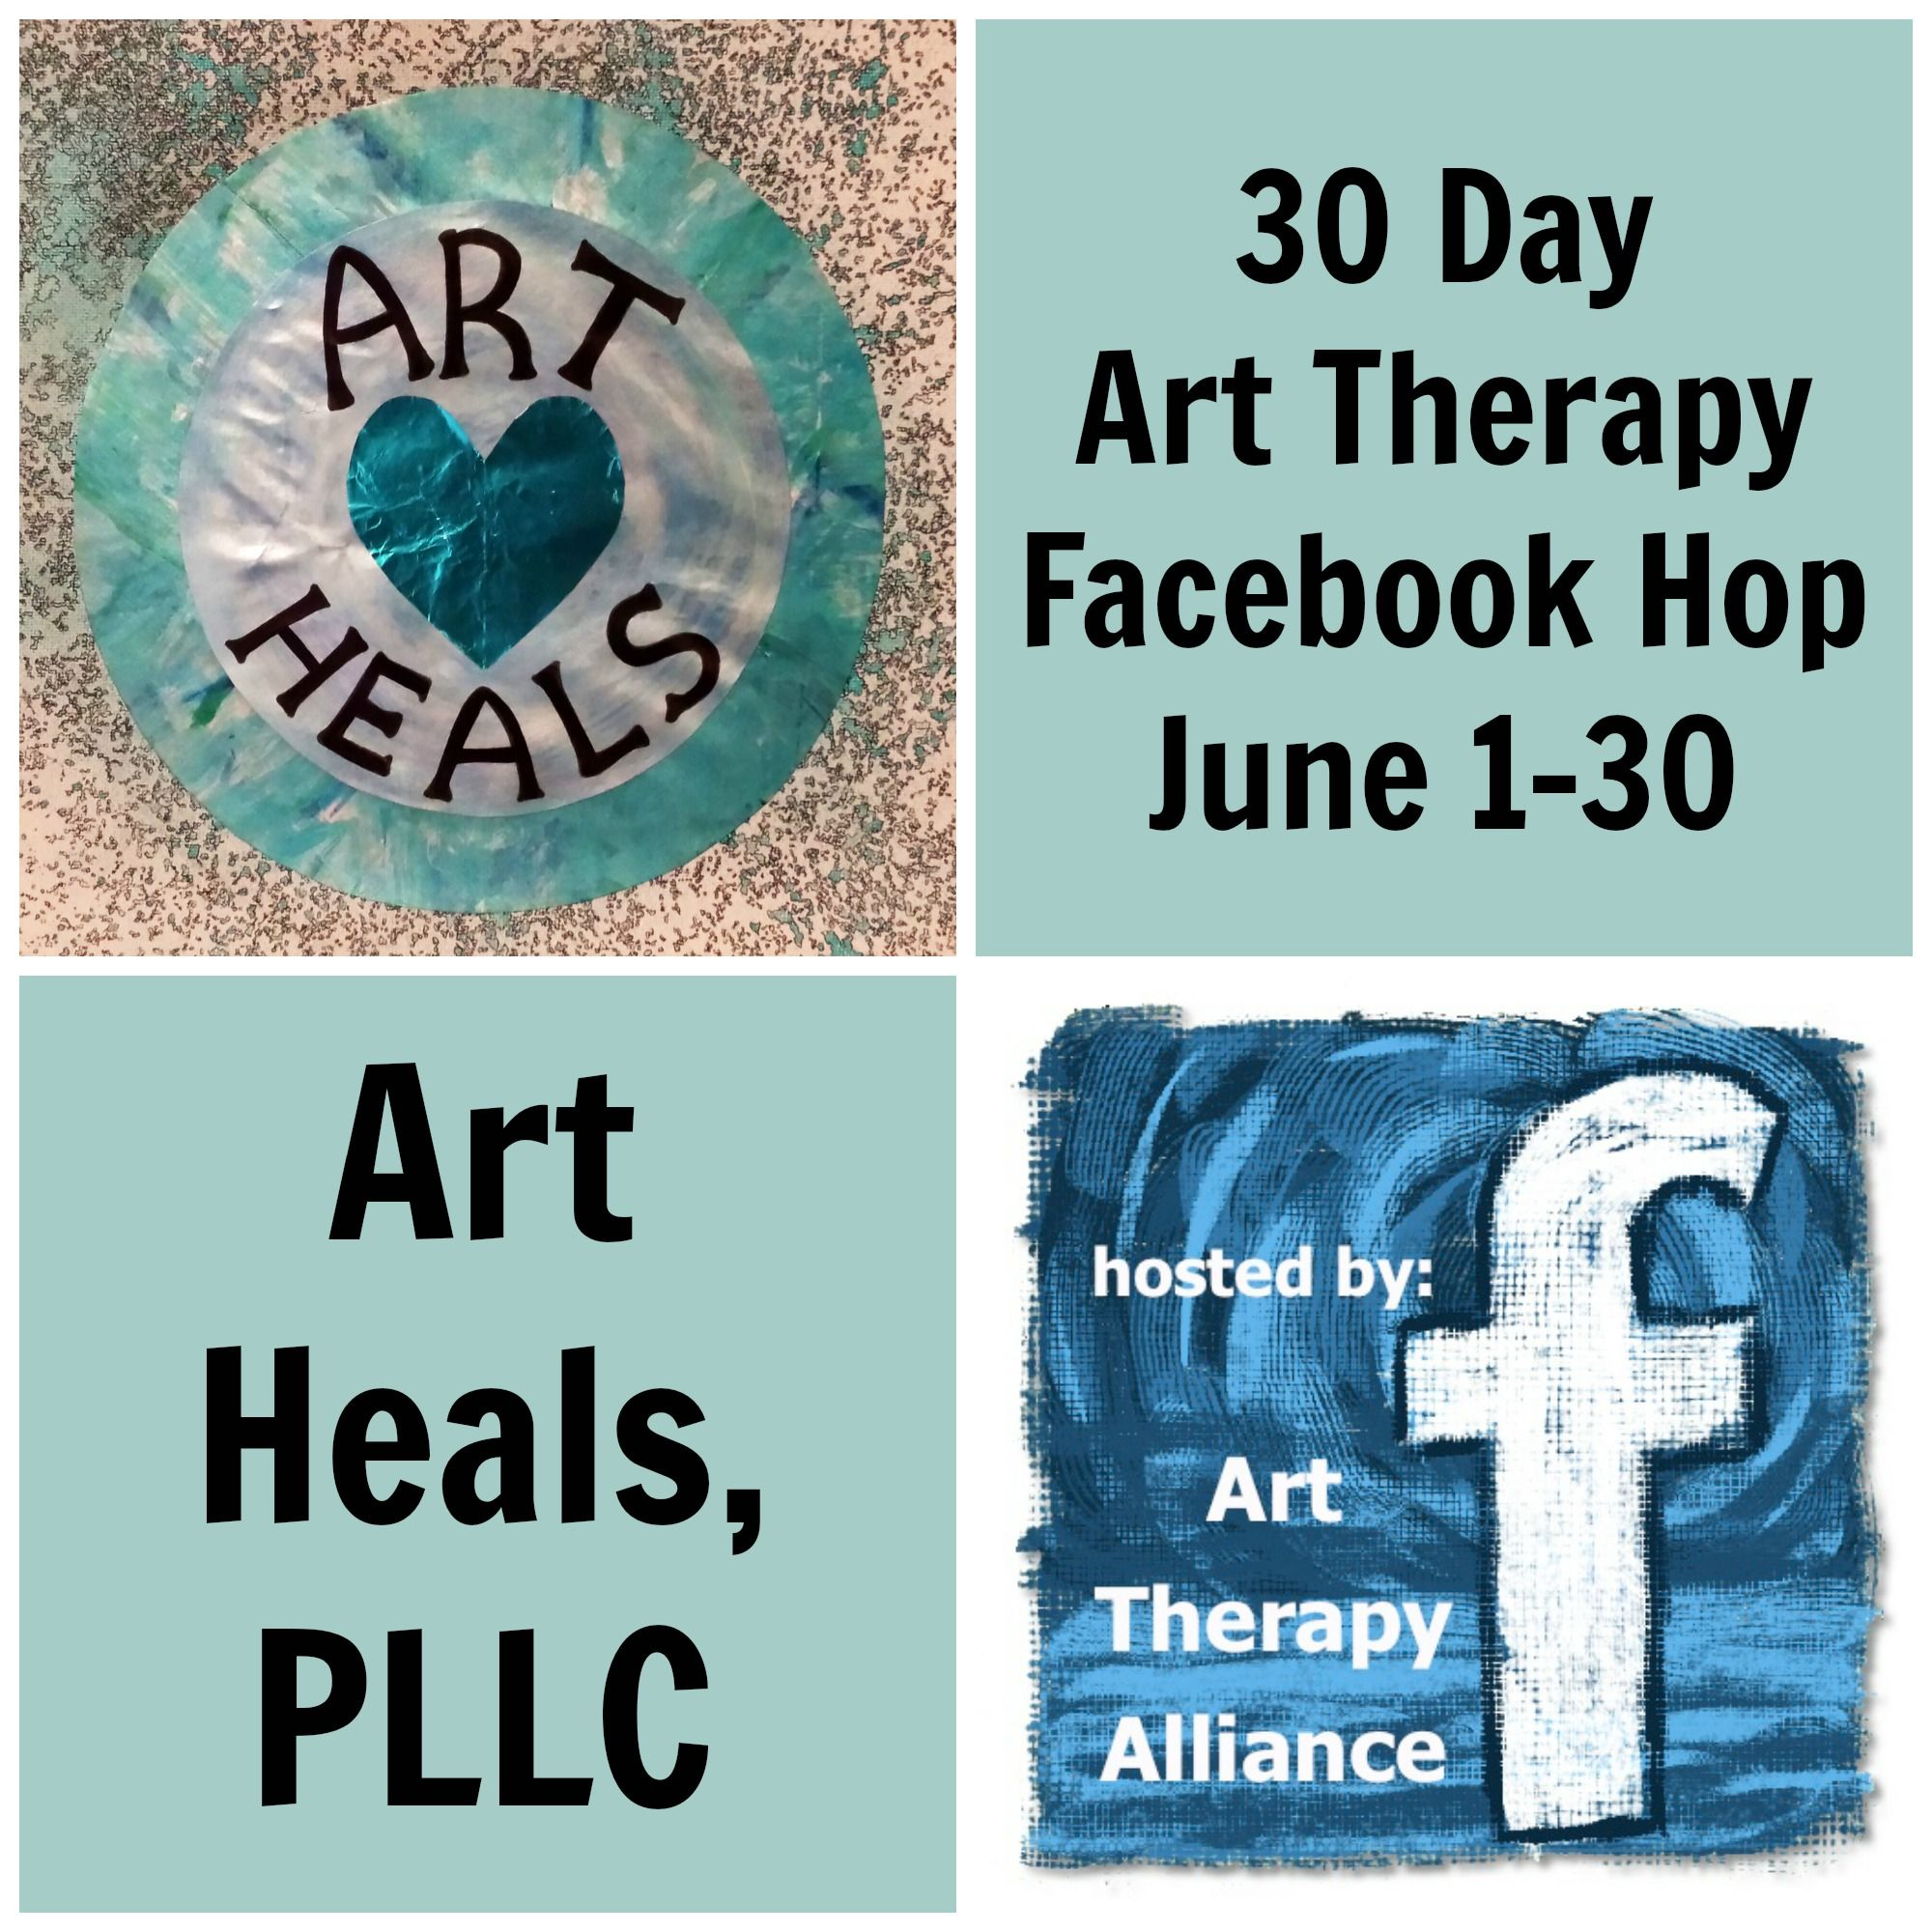 Say hello to Bethany Sweeden & Art Heals, PLLC from Texas ...